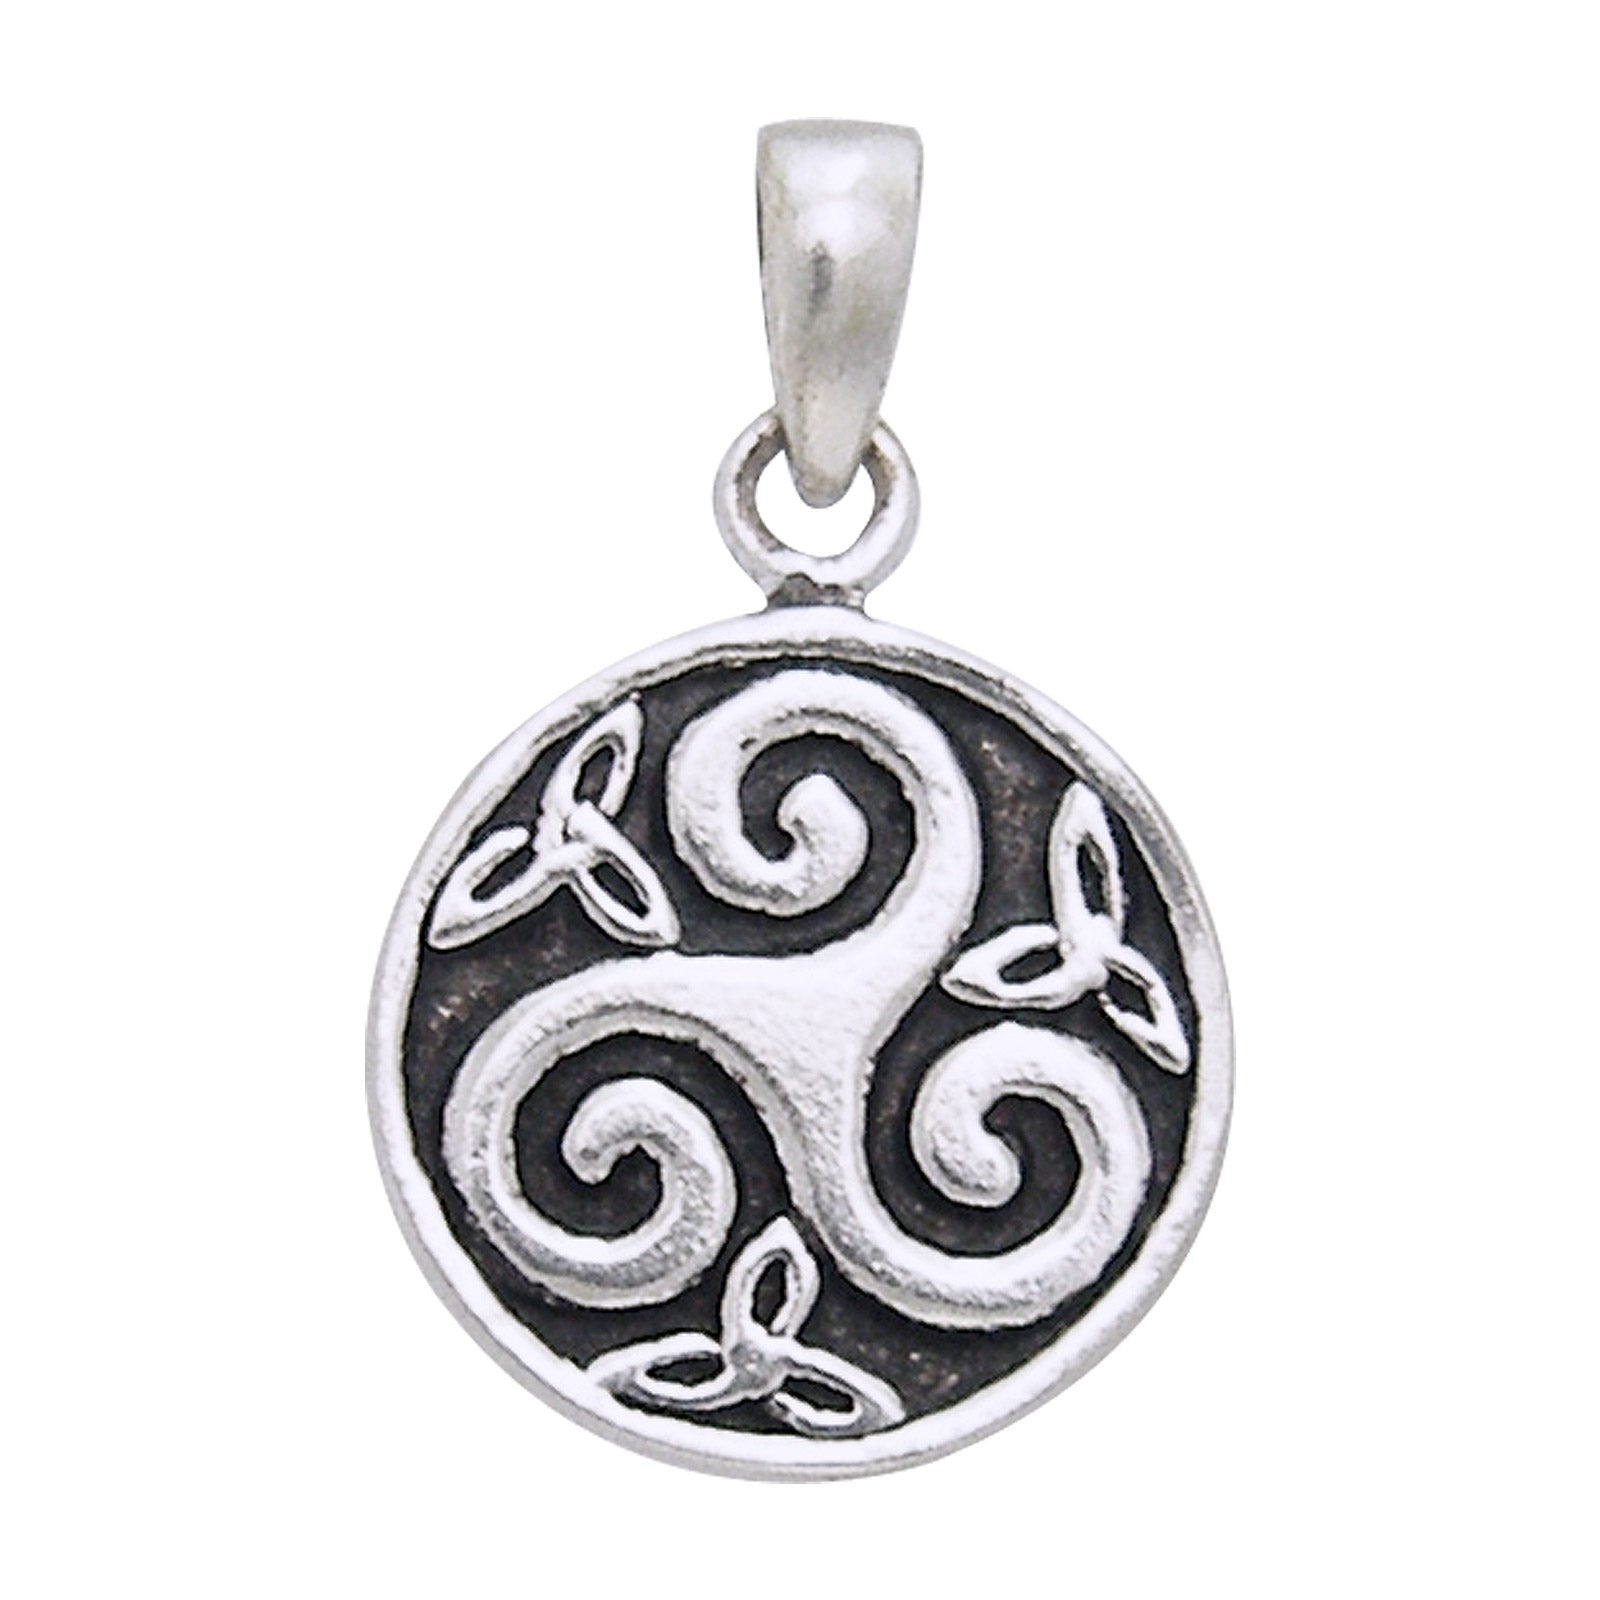 Triskelion Small Round Celtic Knot Triskele Swirl Sterling Silver Pendant - Silver Insanity